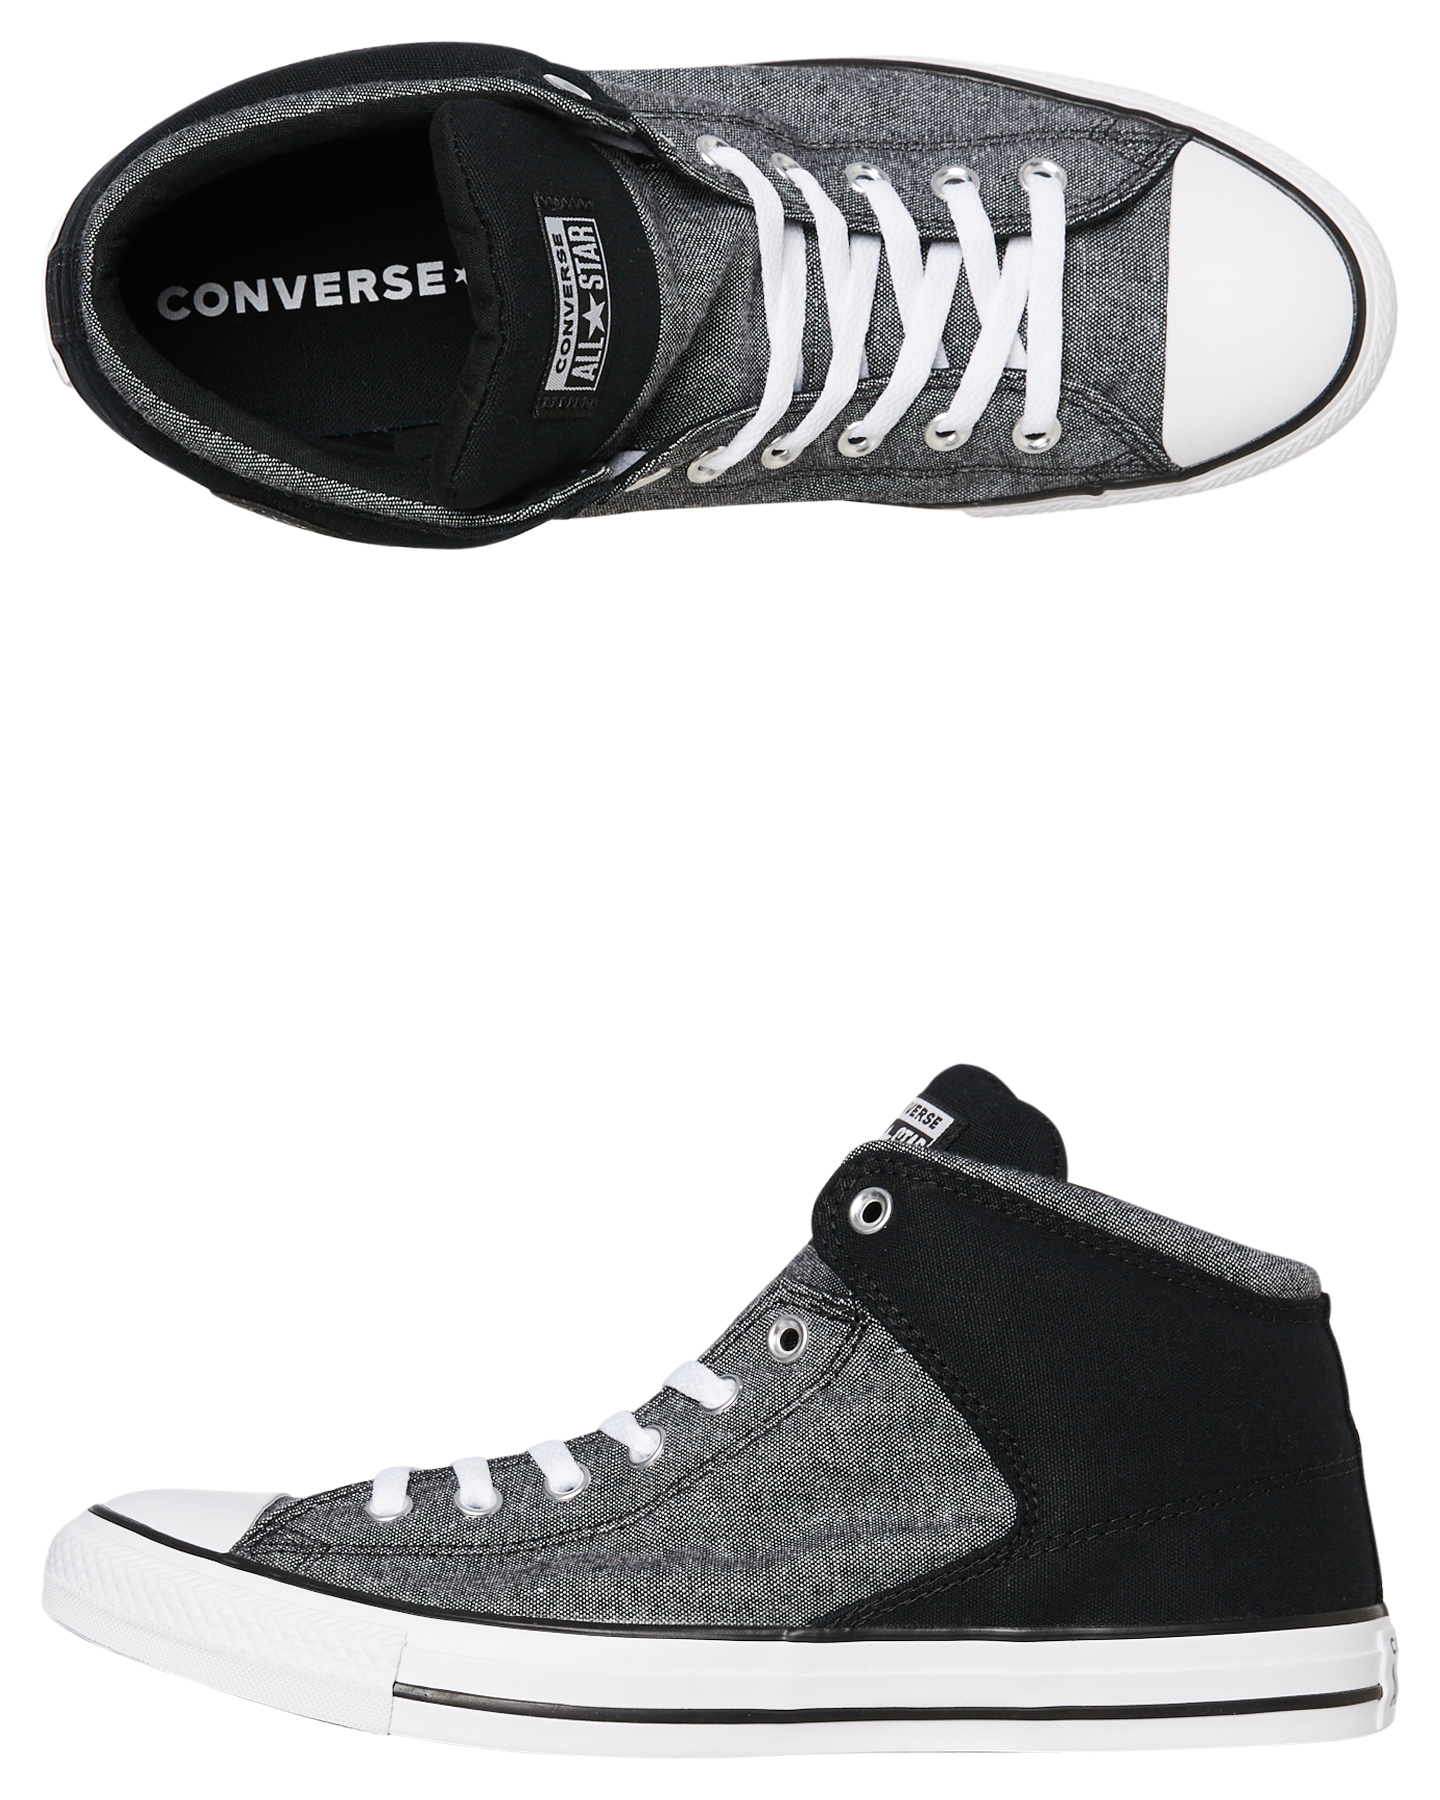 Converse CHUCK TAYLOR ALL STAR HIGH STREET Trainers